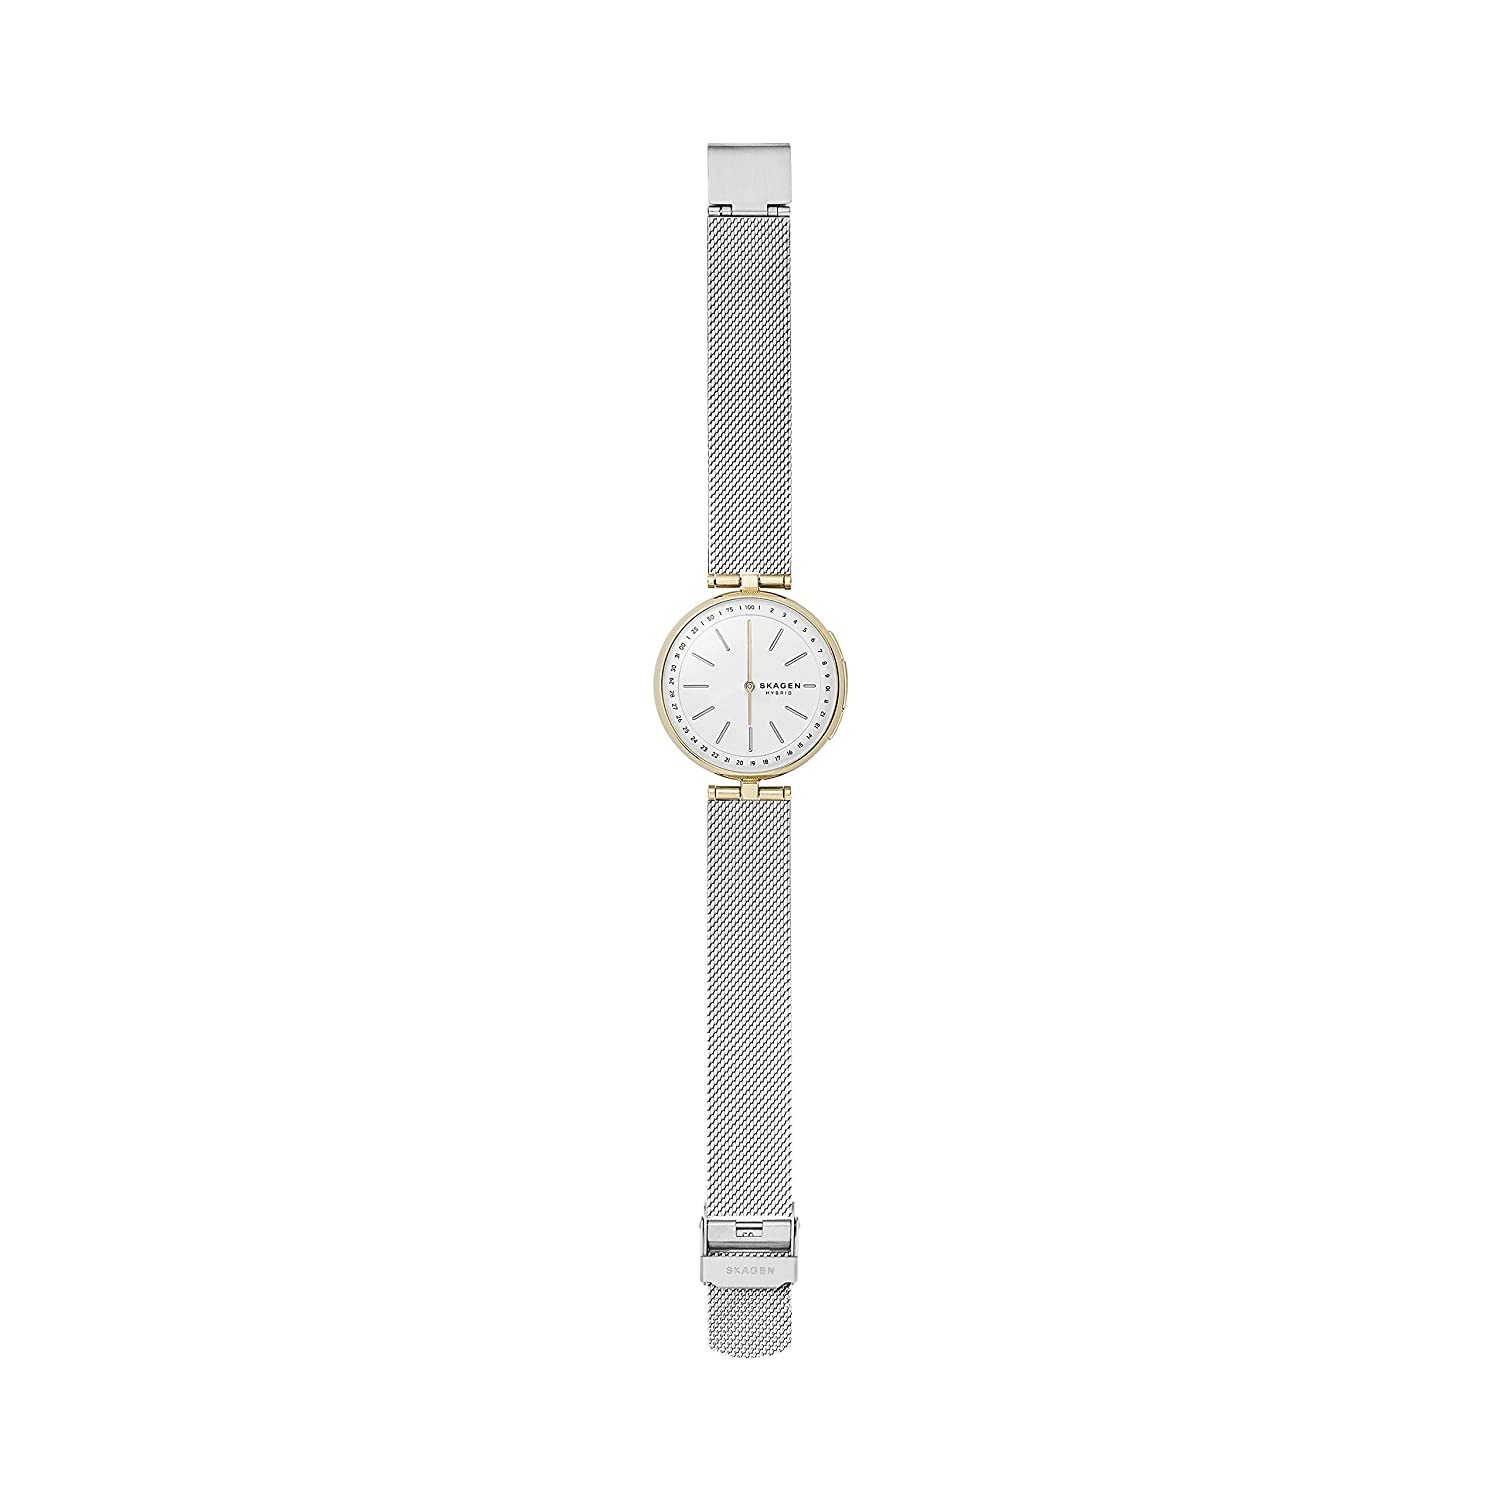 Mesh Connected Skagen Hybrid Signatur T SilvermodelSkt1413 SmartwatchColorGold And Bar Steel Women's Stainless Two Tone edoWrBCx